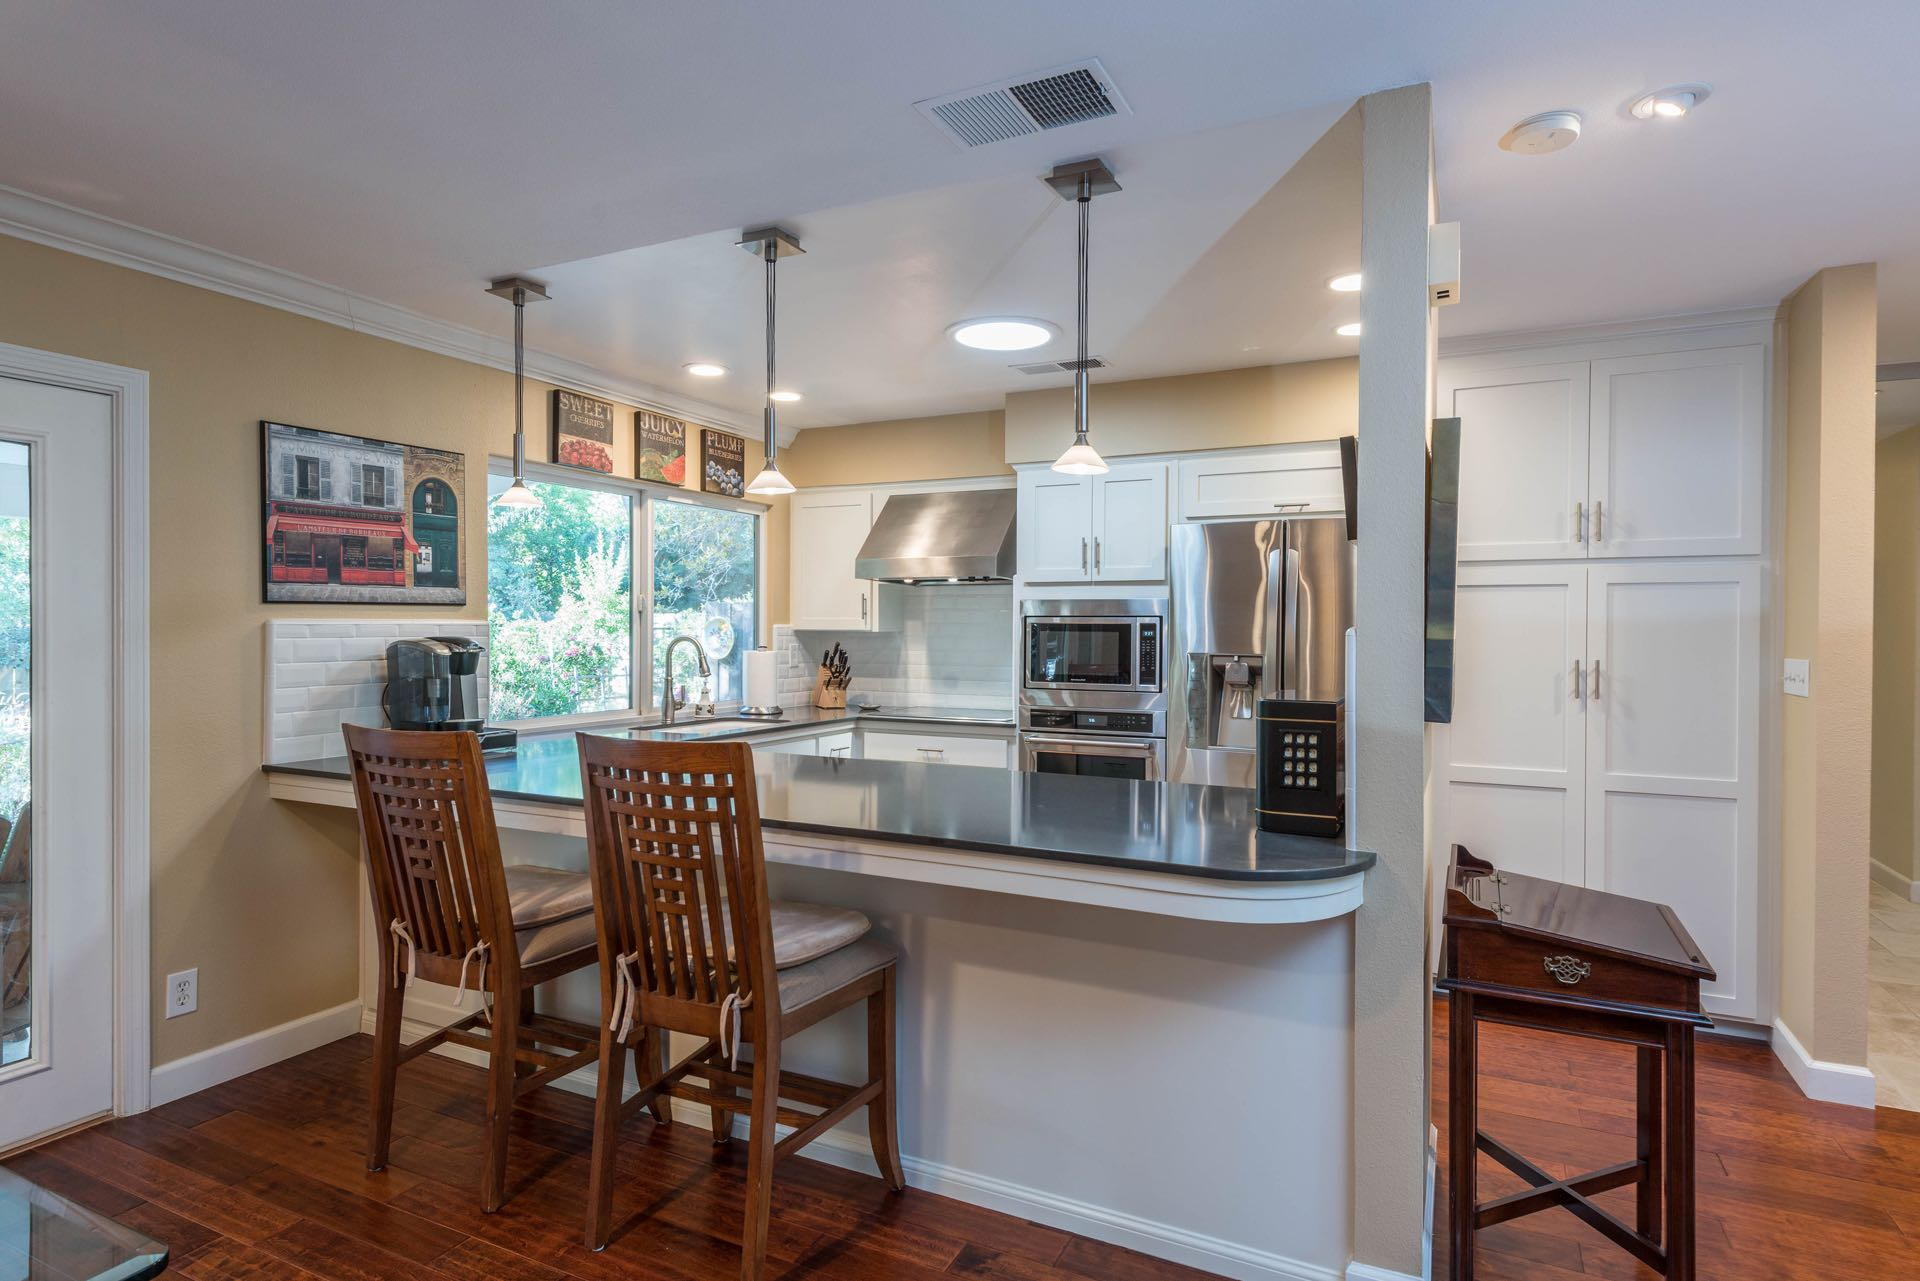 Escalon Imagine Remodeling